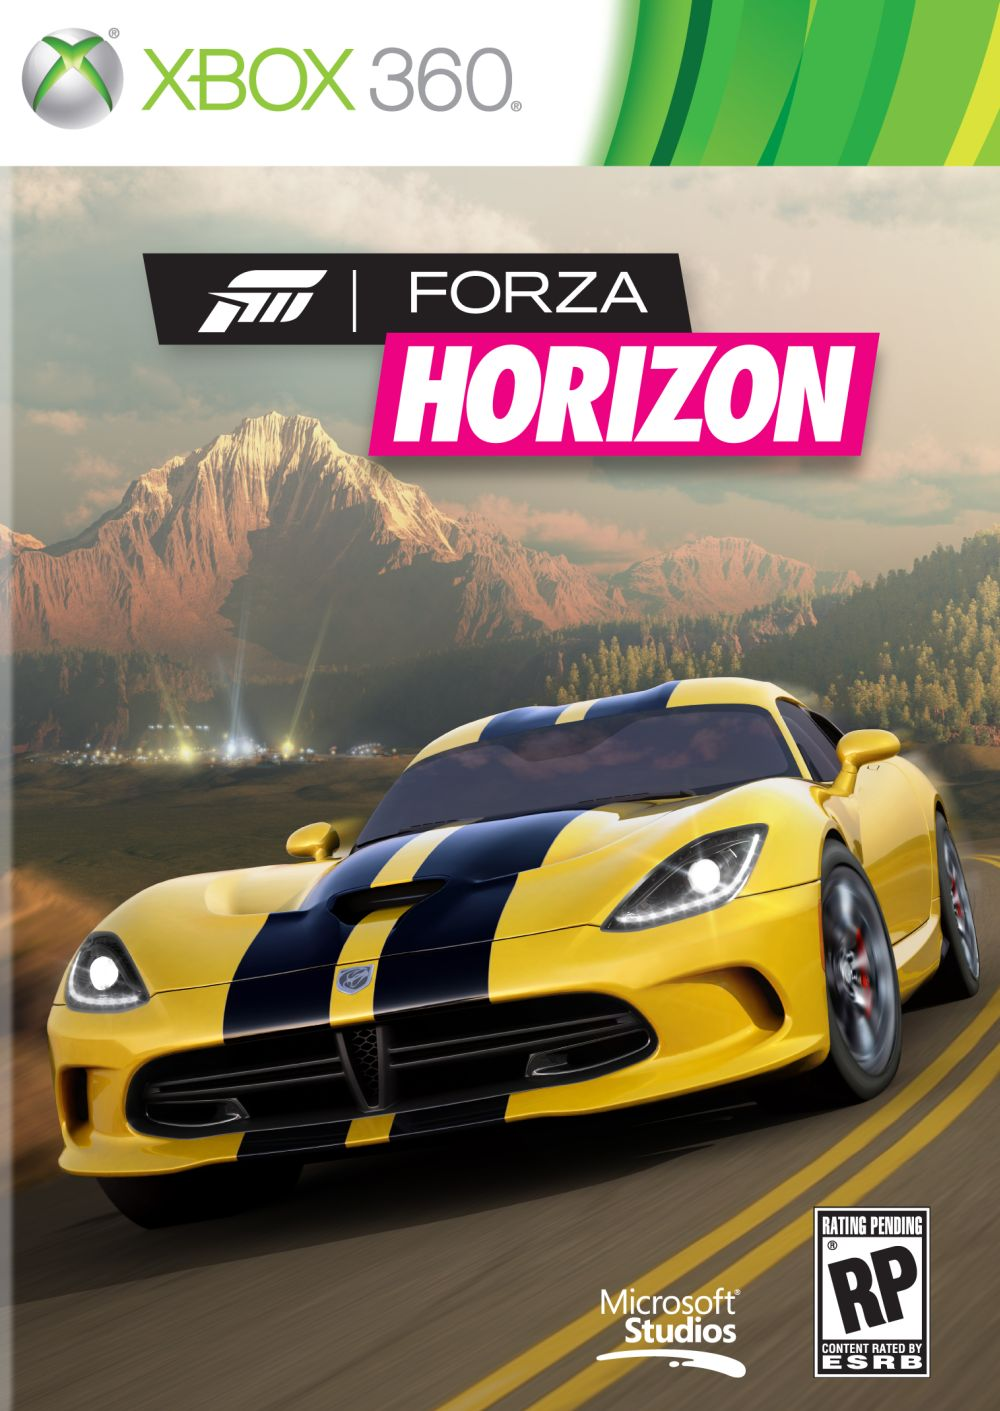 Forza Horizon Discount Sign Locations : forza, horizon, discount, locations, Discount, Signs, Forza, Horizon, Guide